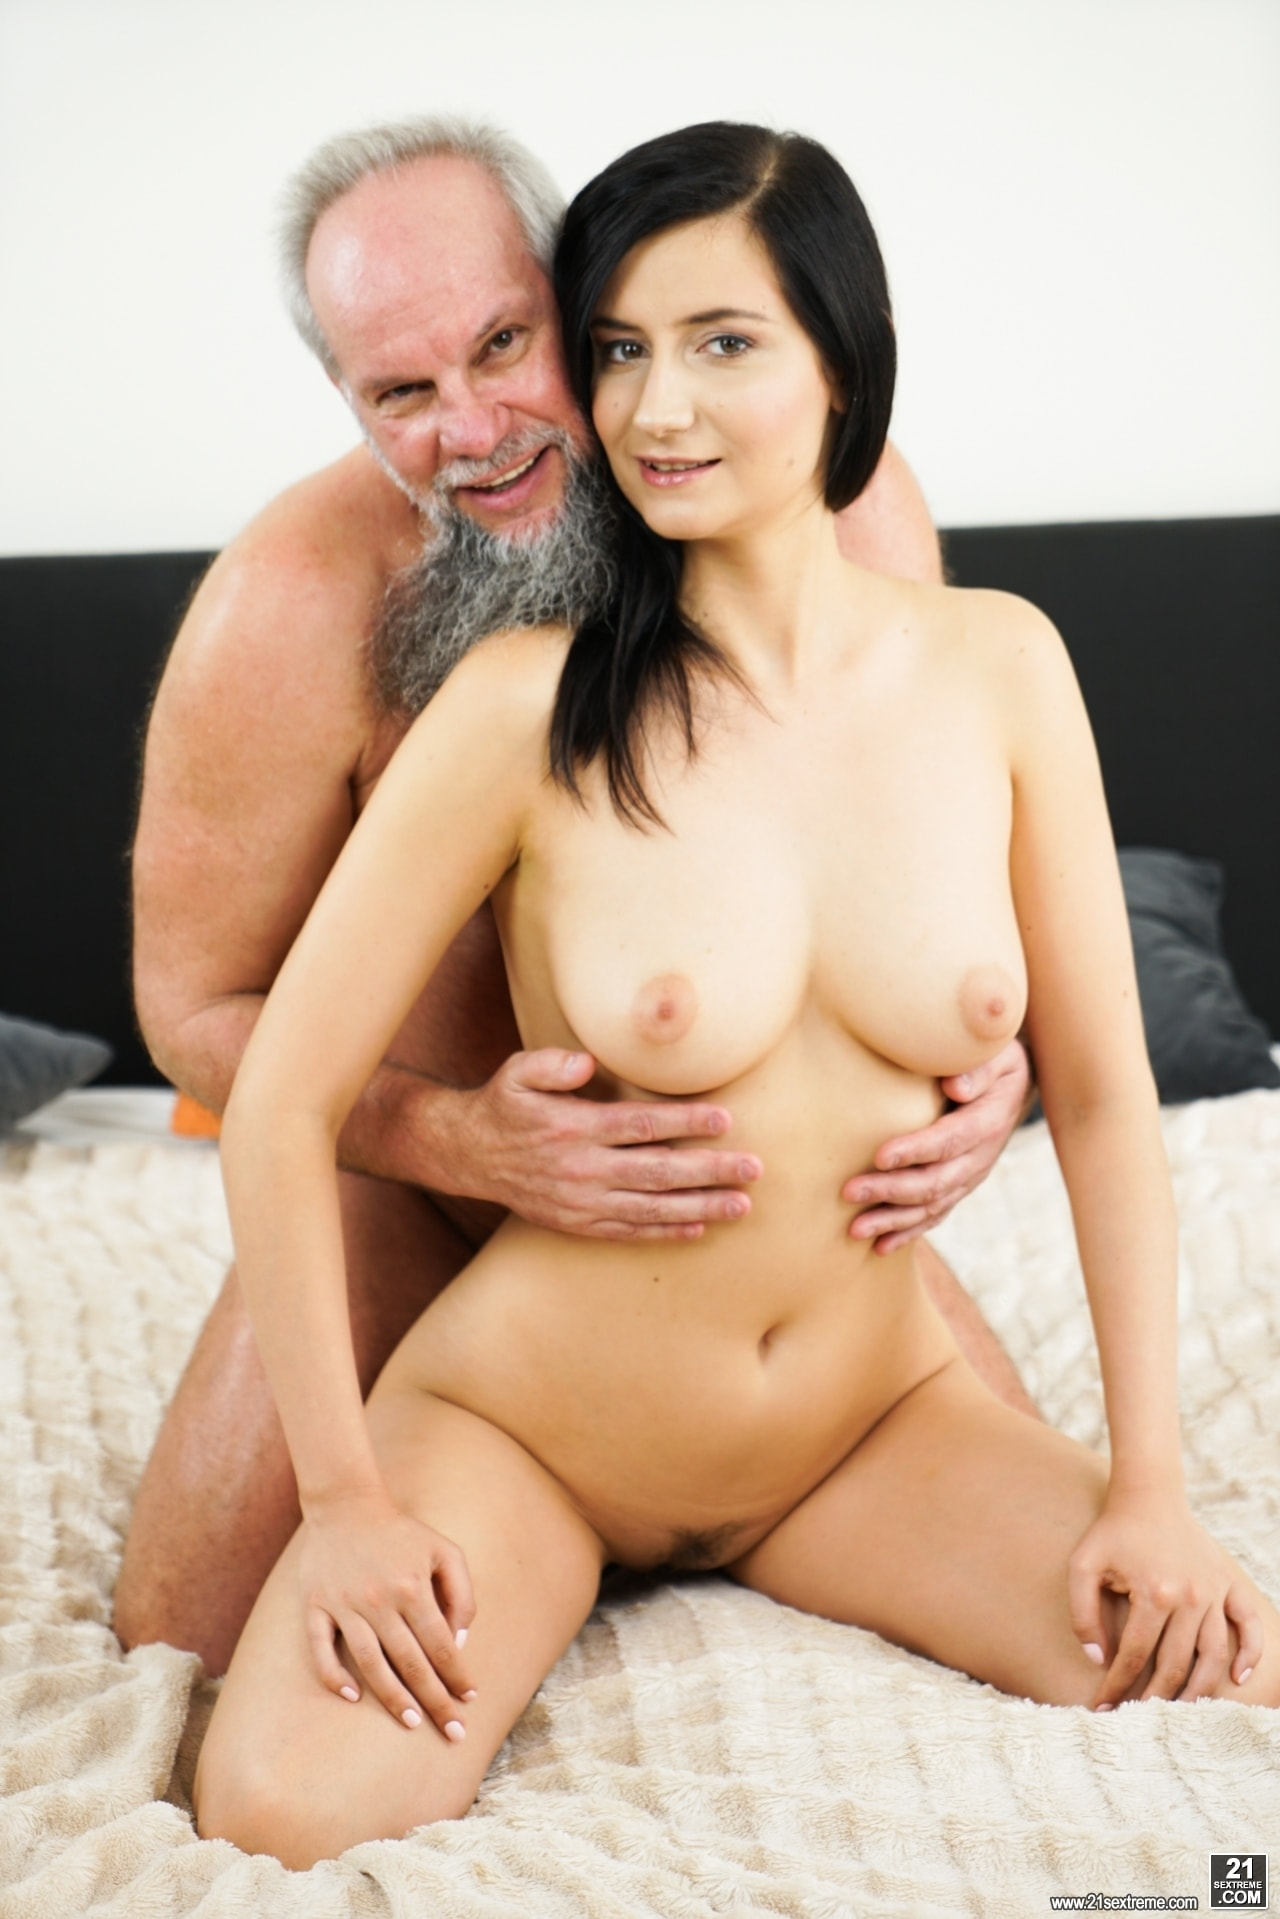 21Sextury 'Don't Let It End' starring Melody Mae (Photo 13)